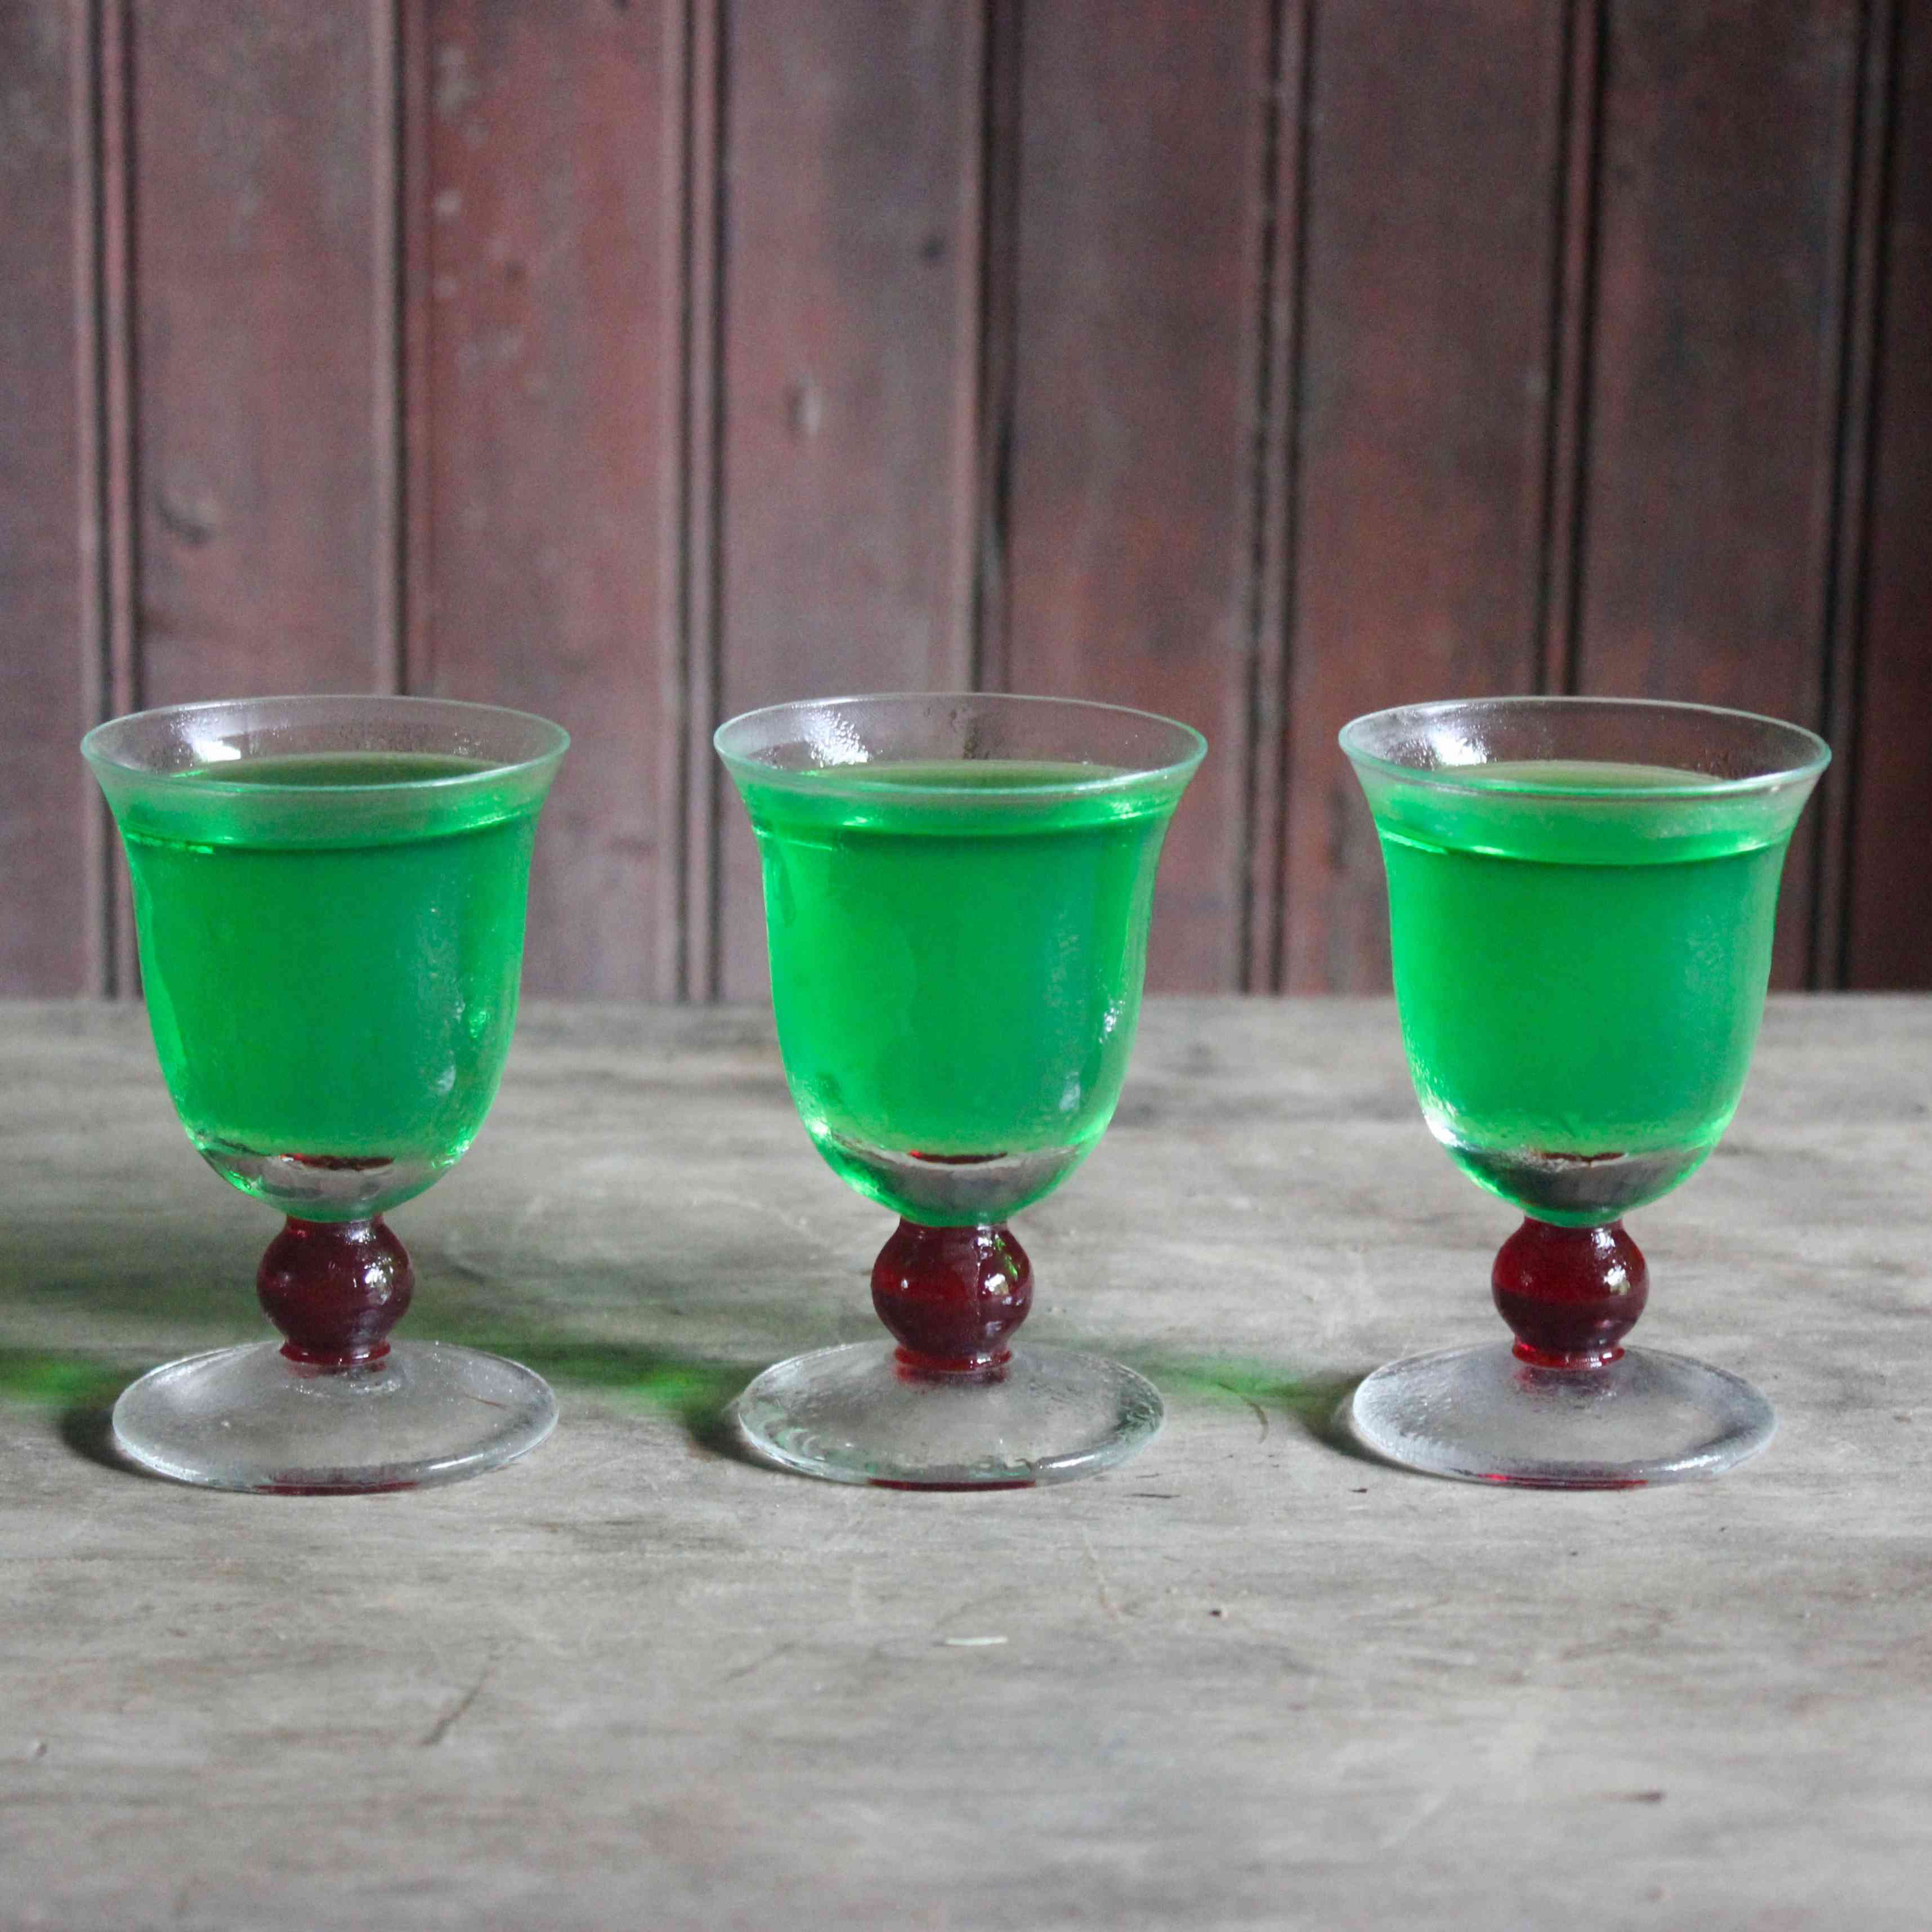 Fun and Easy Jell-O Shot Tester Image